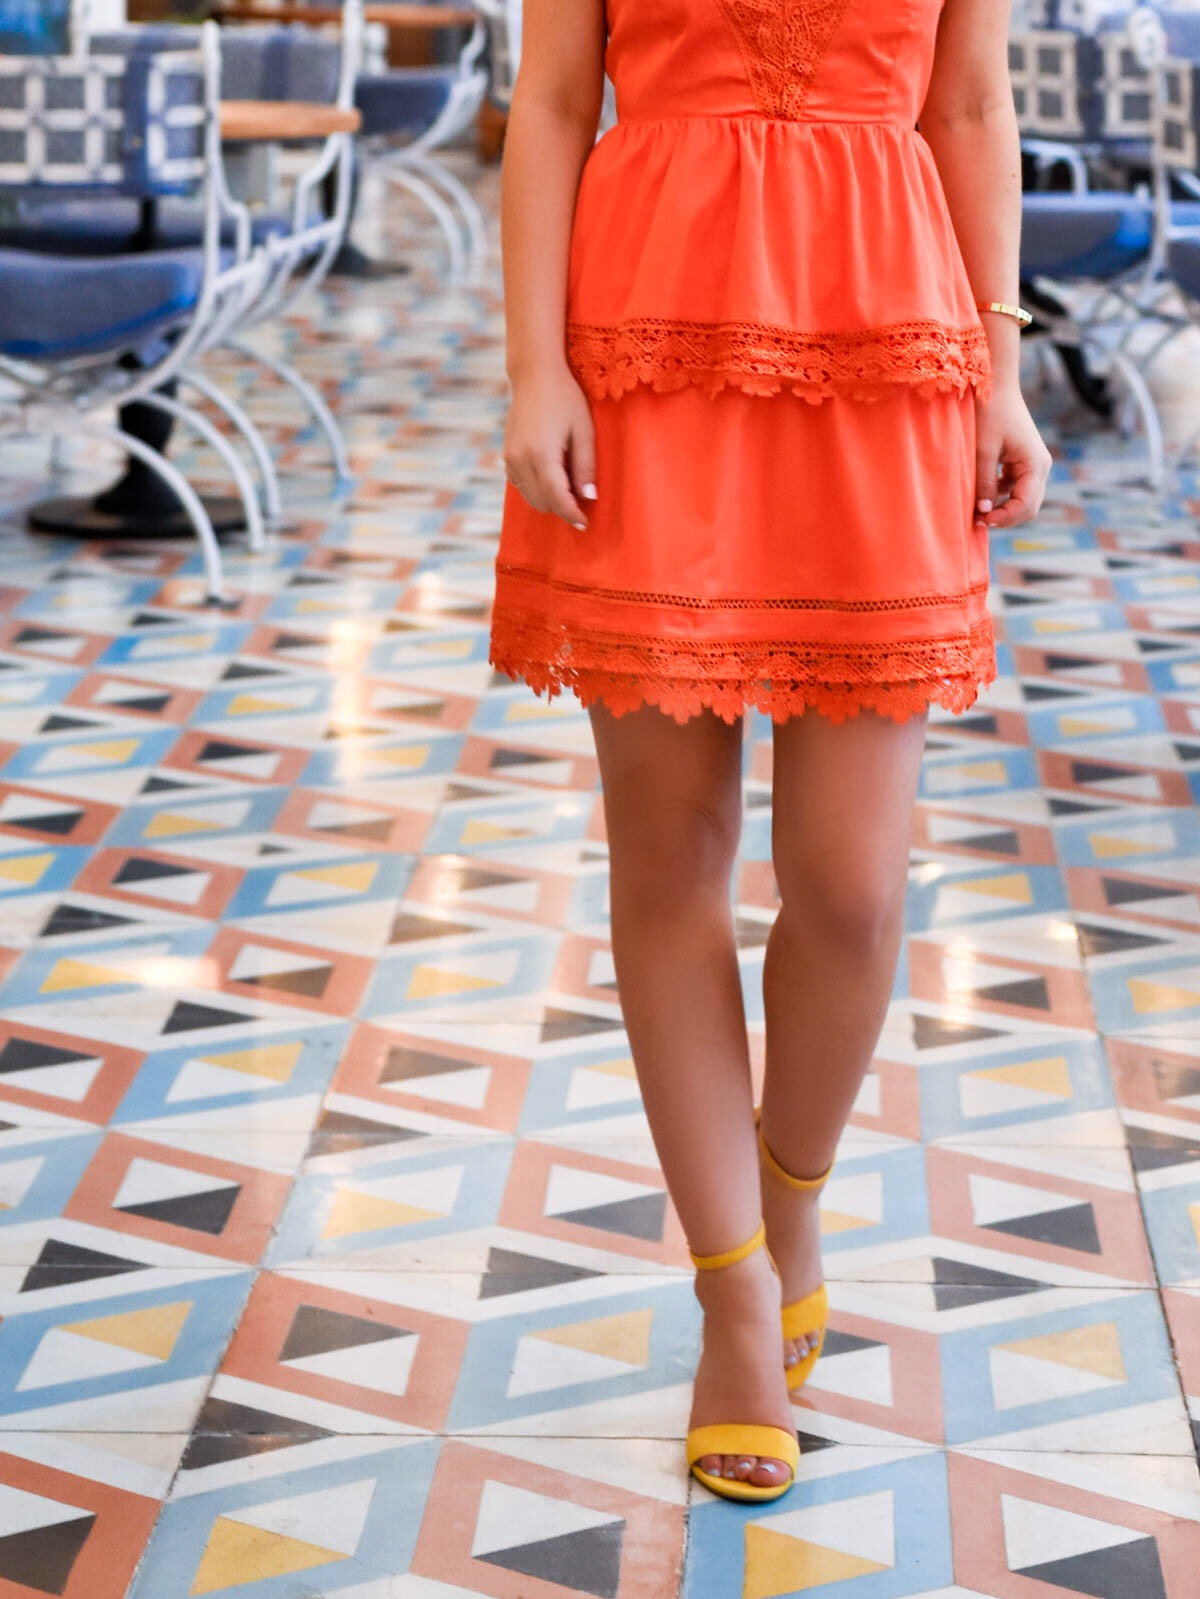 Bardot-Dress, Nordstrom-Dress, Lace-Dress, Orange-Lace-Dress, Bardot, Mexico-City, Travel-Blogger, Sam-Edelman-sandals